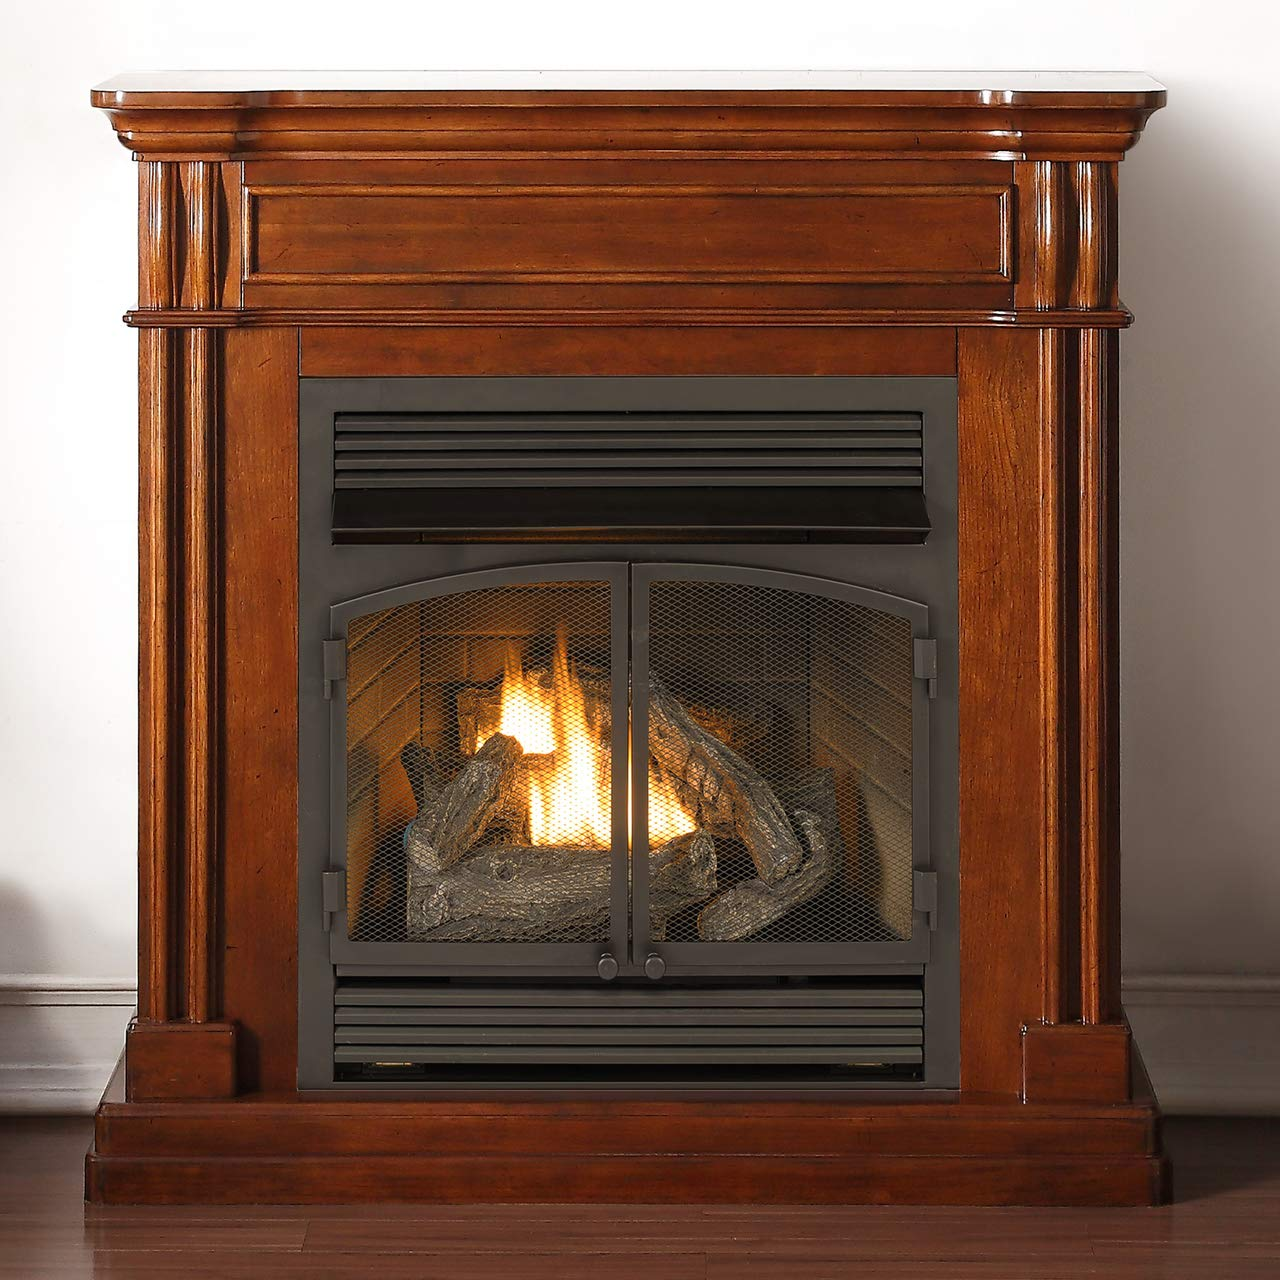 Duluth Forge FDF400T-ZC Dual Fuel Ventless Fireplace-32,000 BTU, T-Stat Control, Autumn Spice by Duluth Forge